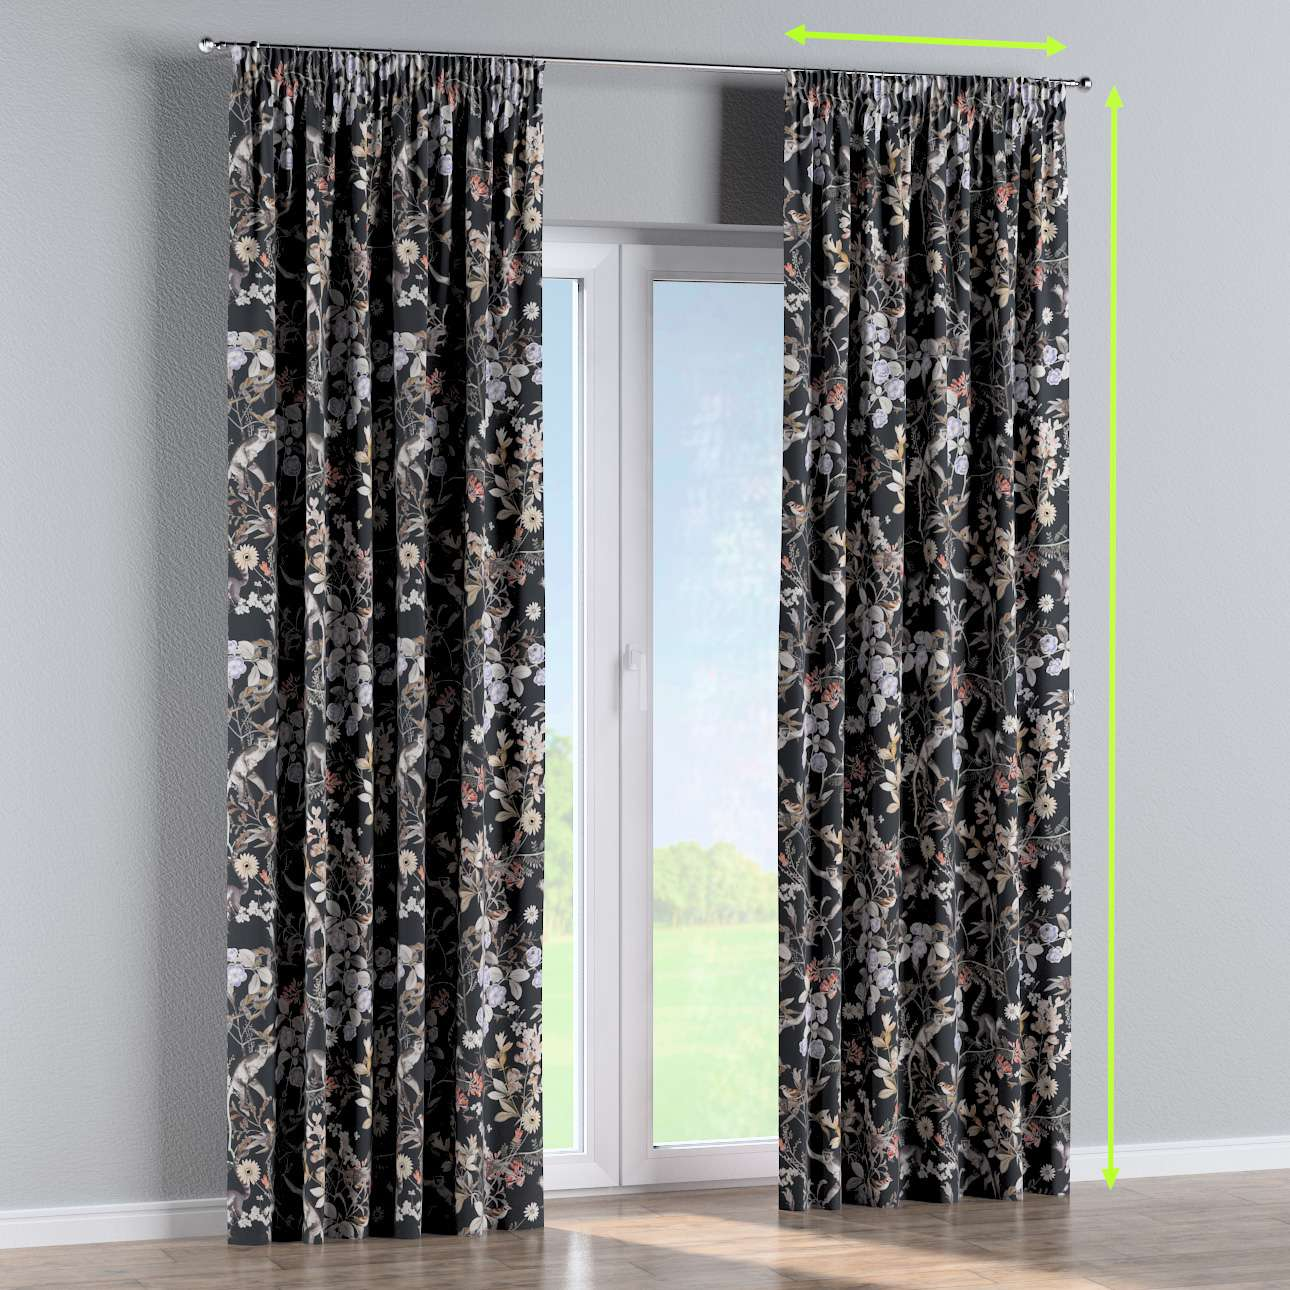 Pencil pleat curtains in collection Tropical Island, fabric: 142-60